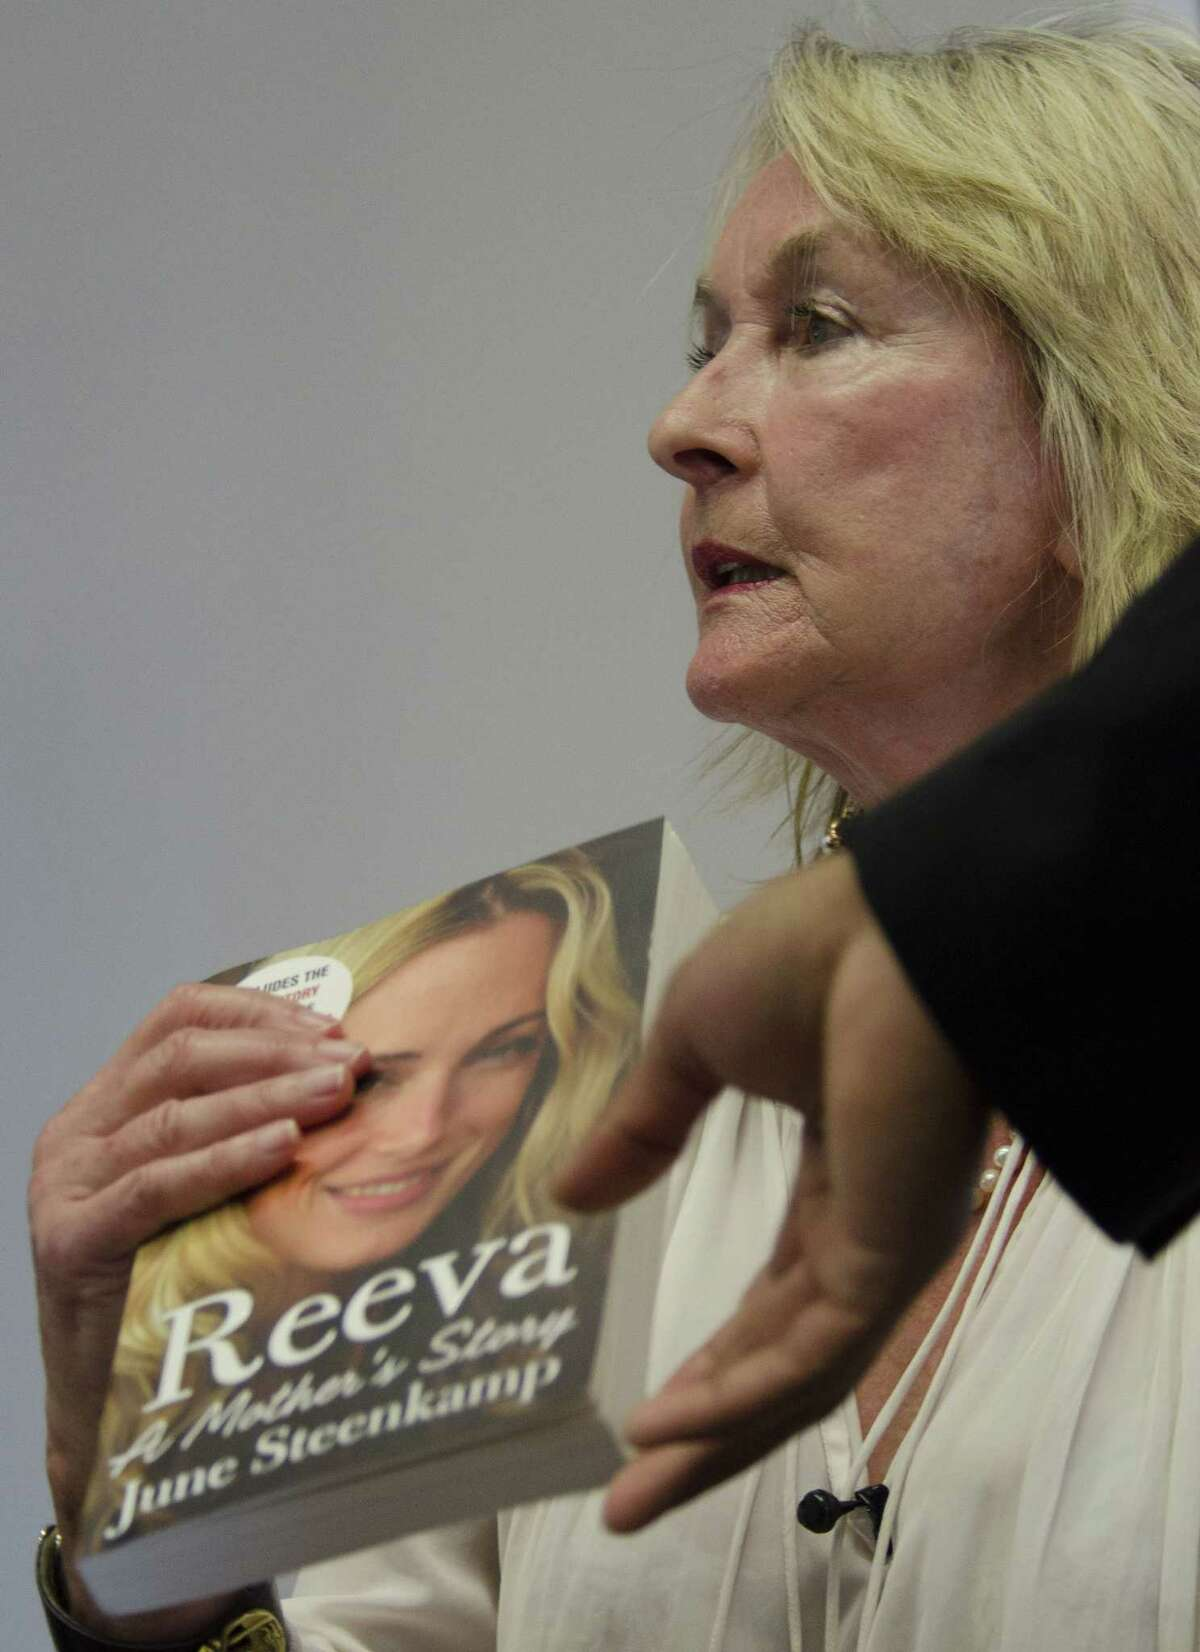 June Steenkamp, the mother of the late Reeva Steenkamp who was shot dead by her boyfriend Oscar Pistorius in 2013, speaks at the launch of her book, ëReeva, A Mothers Story.í in Johannesburg Tuesday, March 10, 2015. Steenkamp said that she did not care about an upcoming appeal hearing by the star athlete. Pistoriusí lawyers will challenge a judge's decision to allow prosecutors to appeal the runner's negligent killing conviction later this week. (AP Photo/Shiraaz Mohamed)